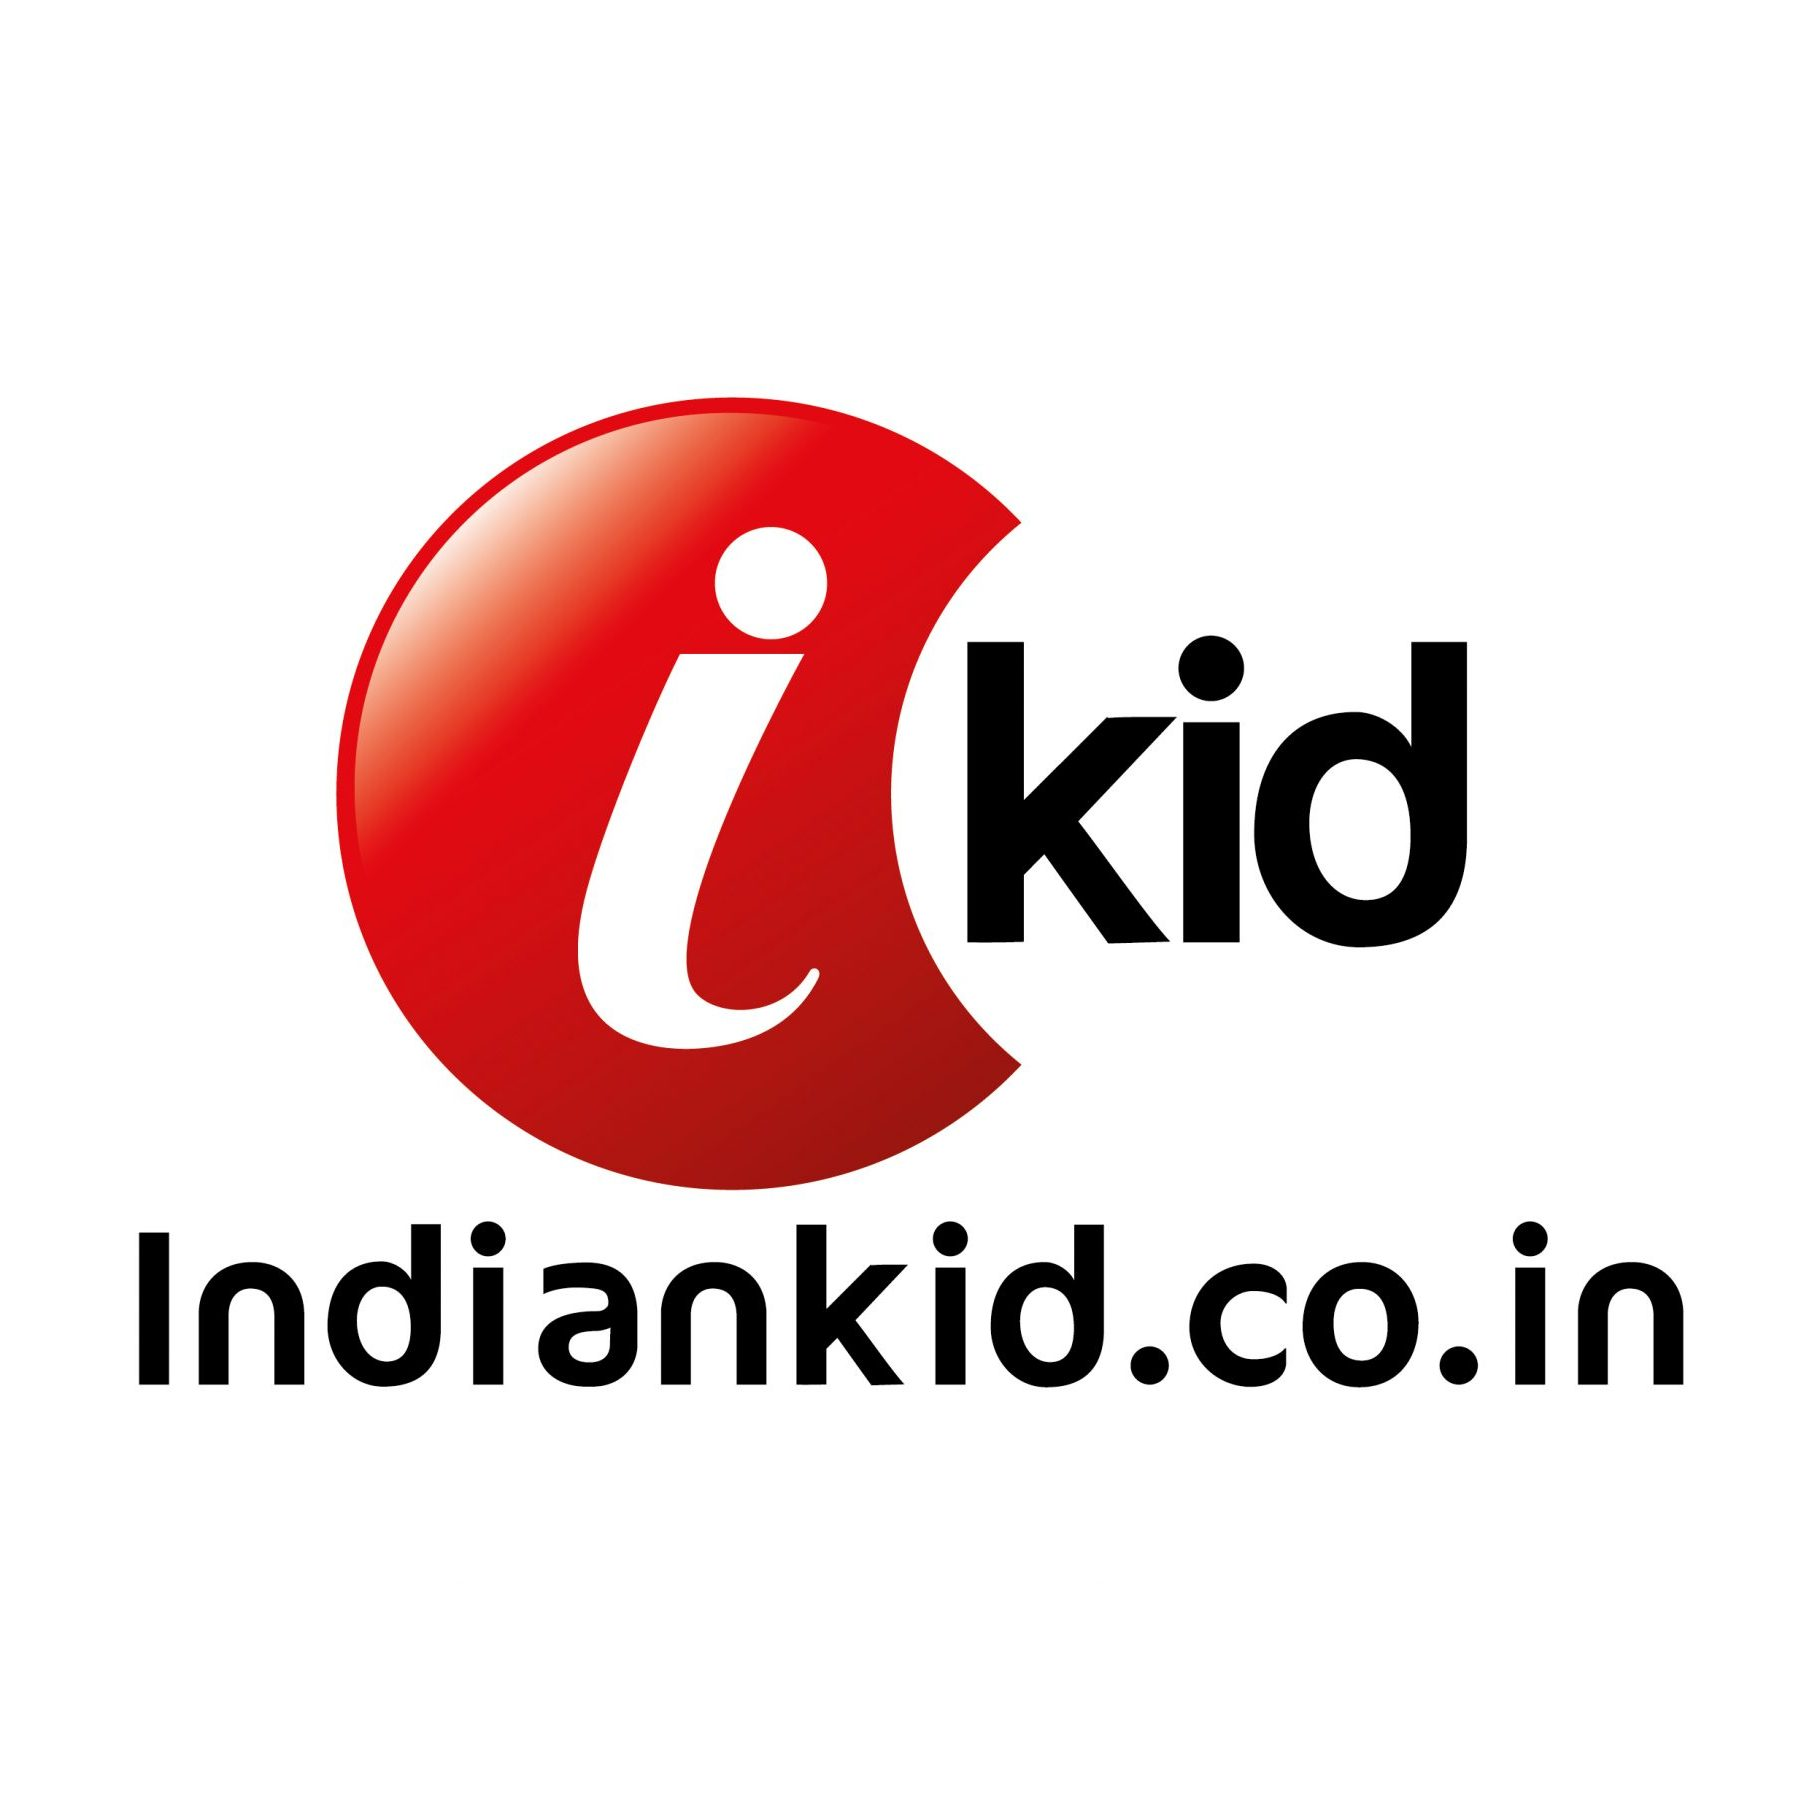 indiankid.co.in